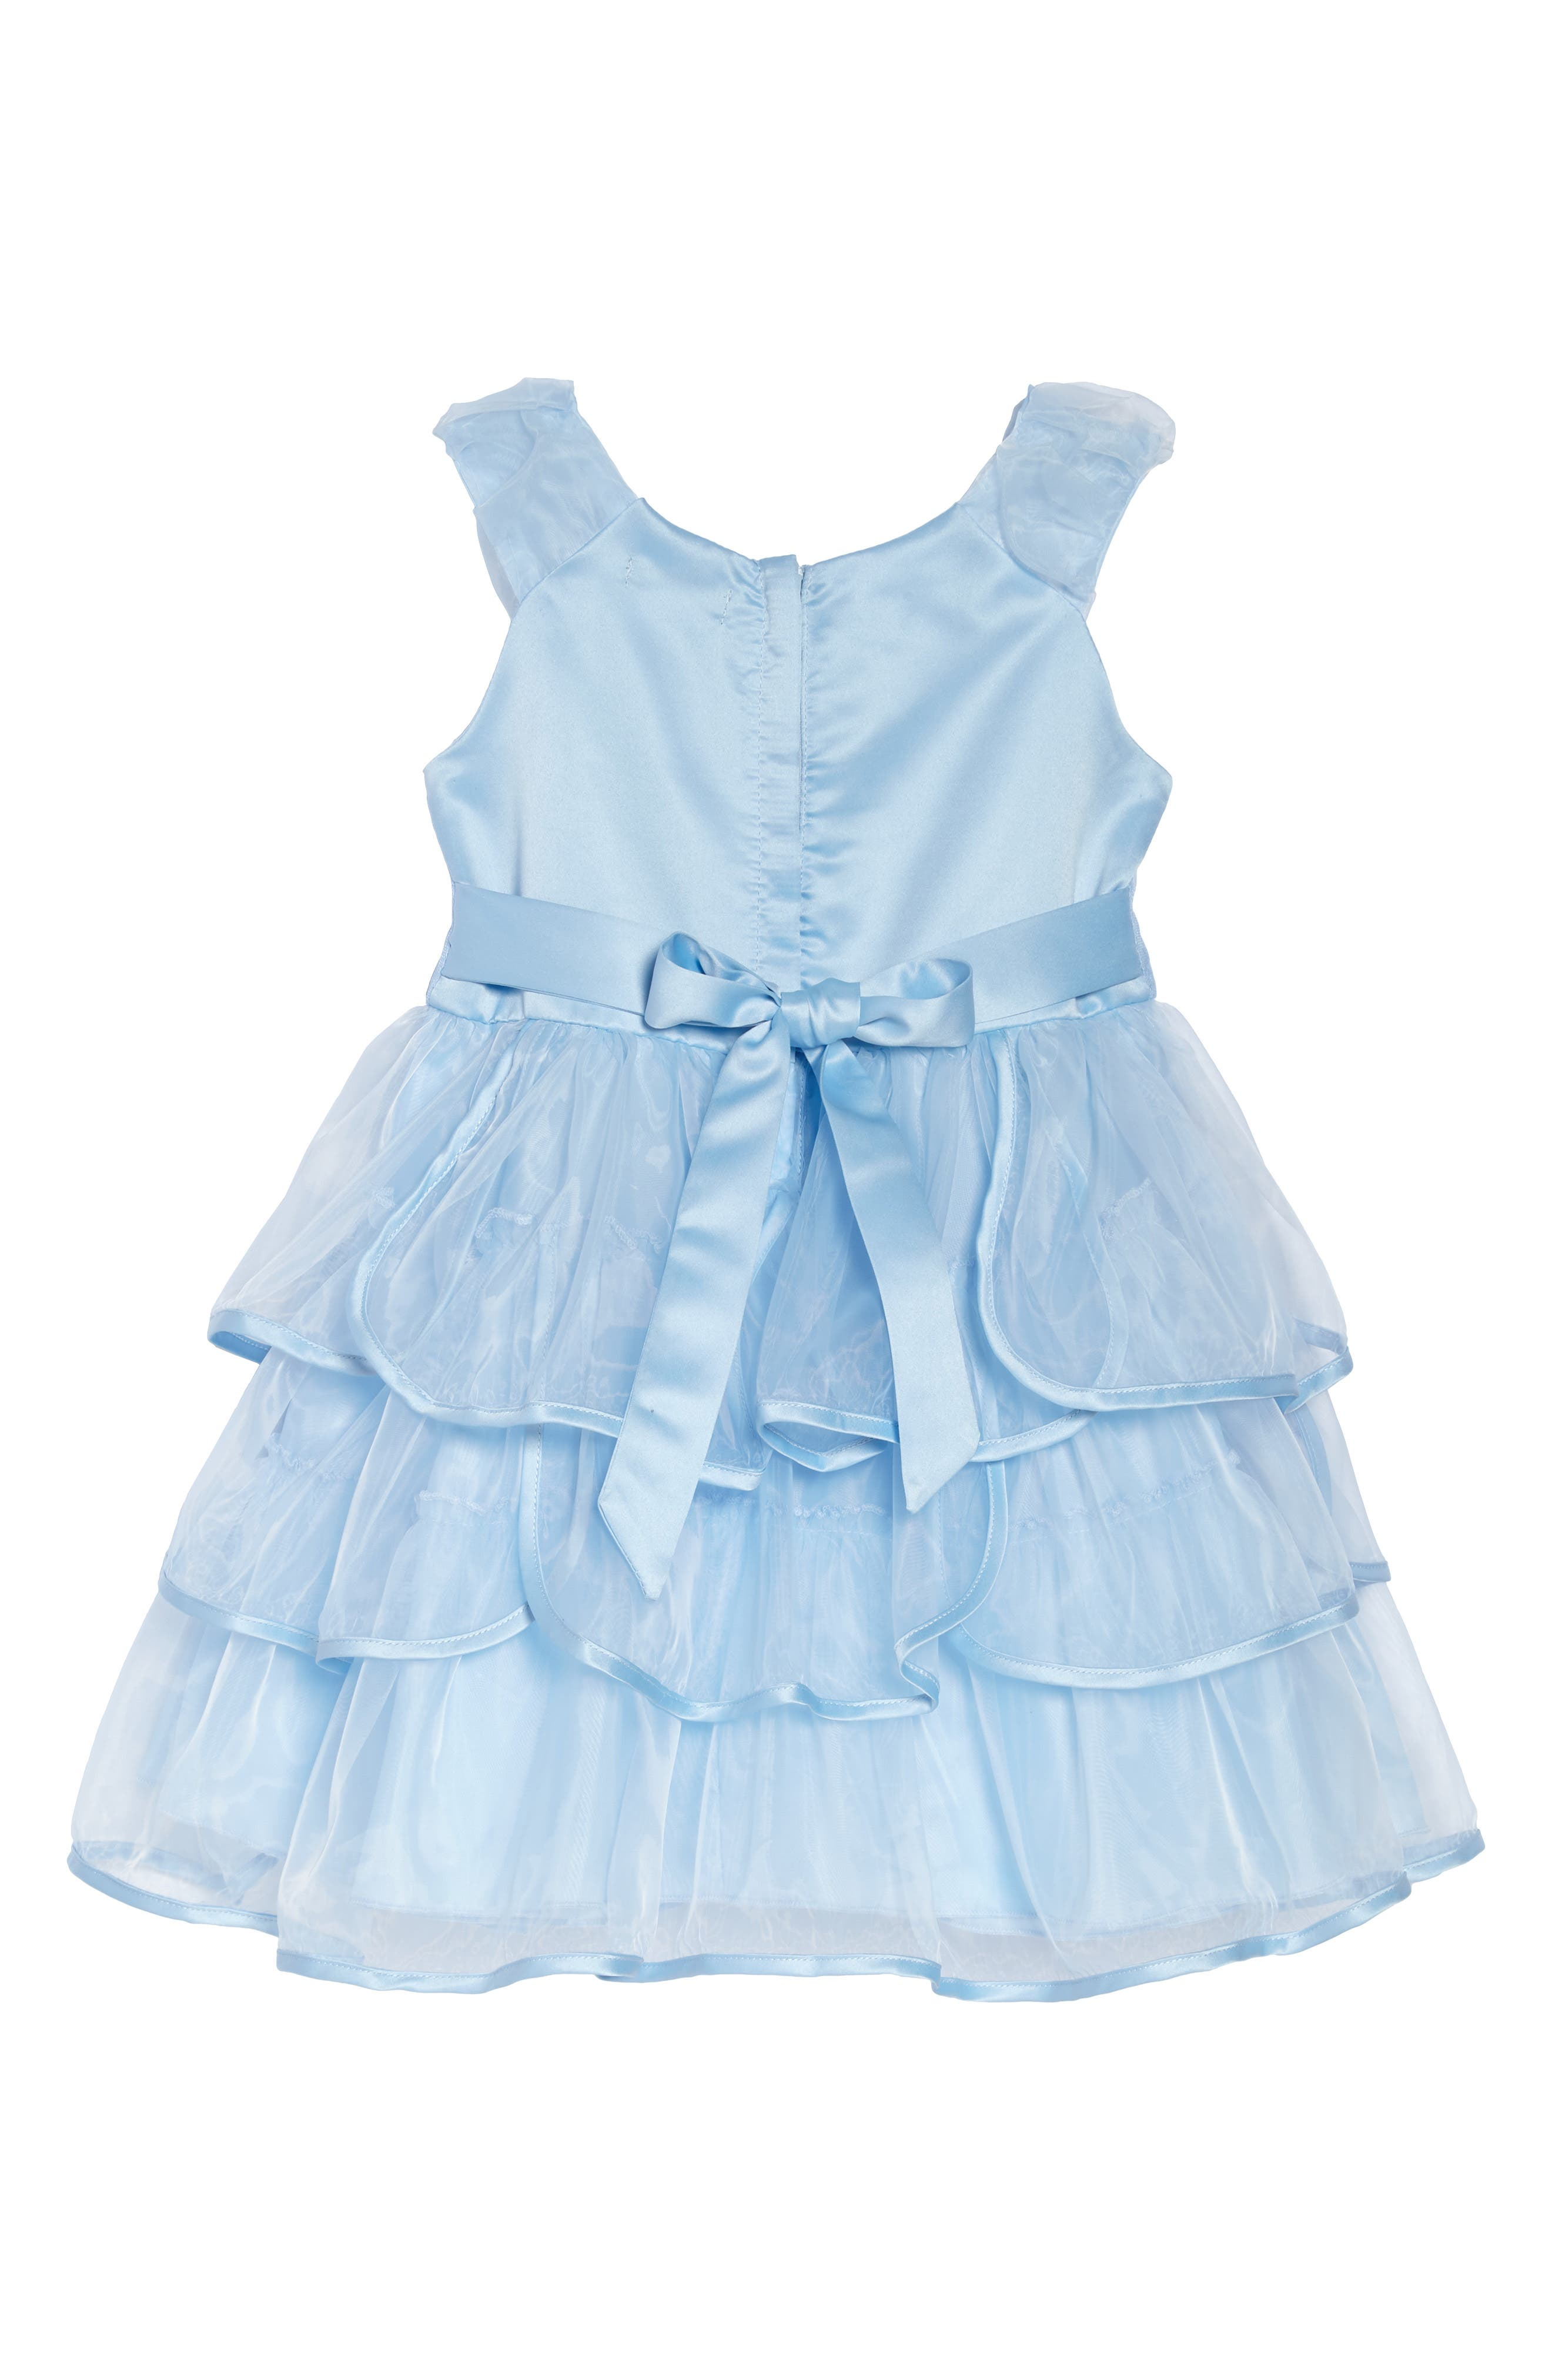 Tiered Organza Party Dress,                             Alternate thumbnail 2, color,                             452